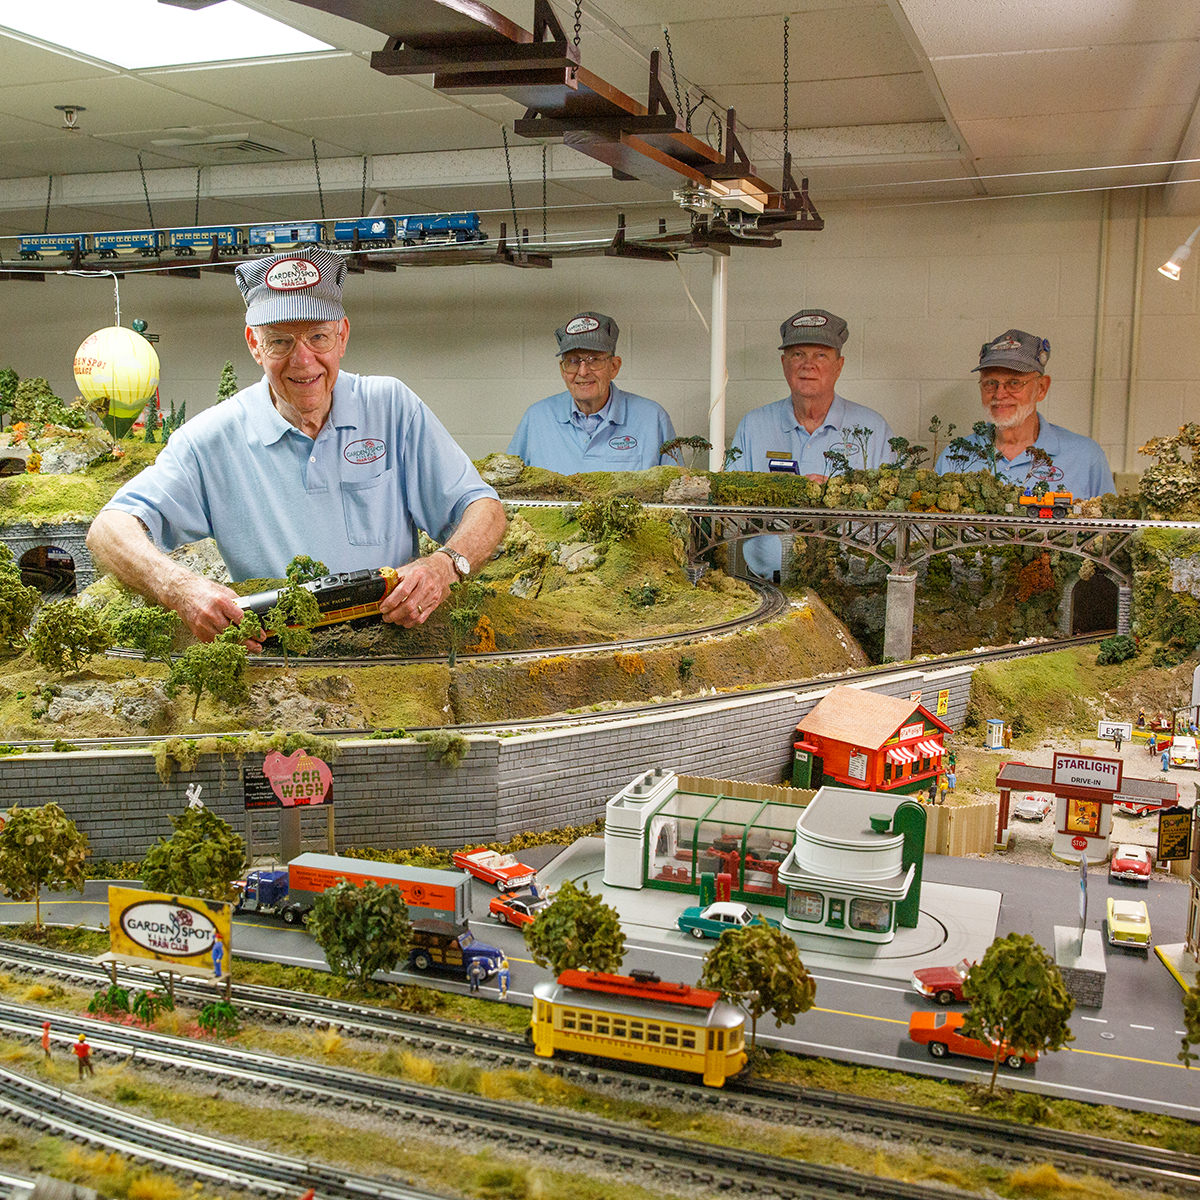 Harry Black working on train layout at Garden Spot Village Train Room